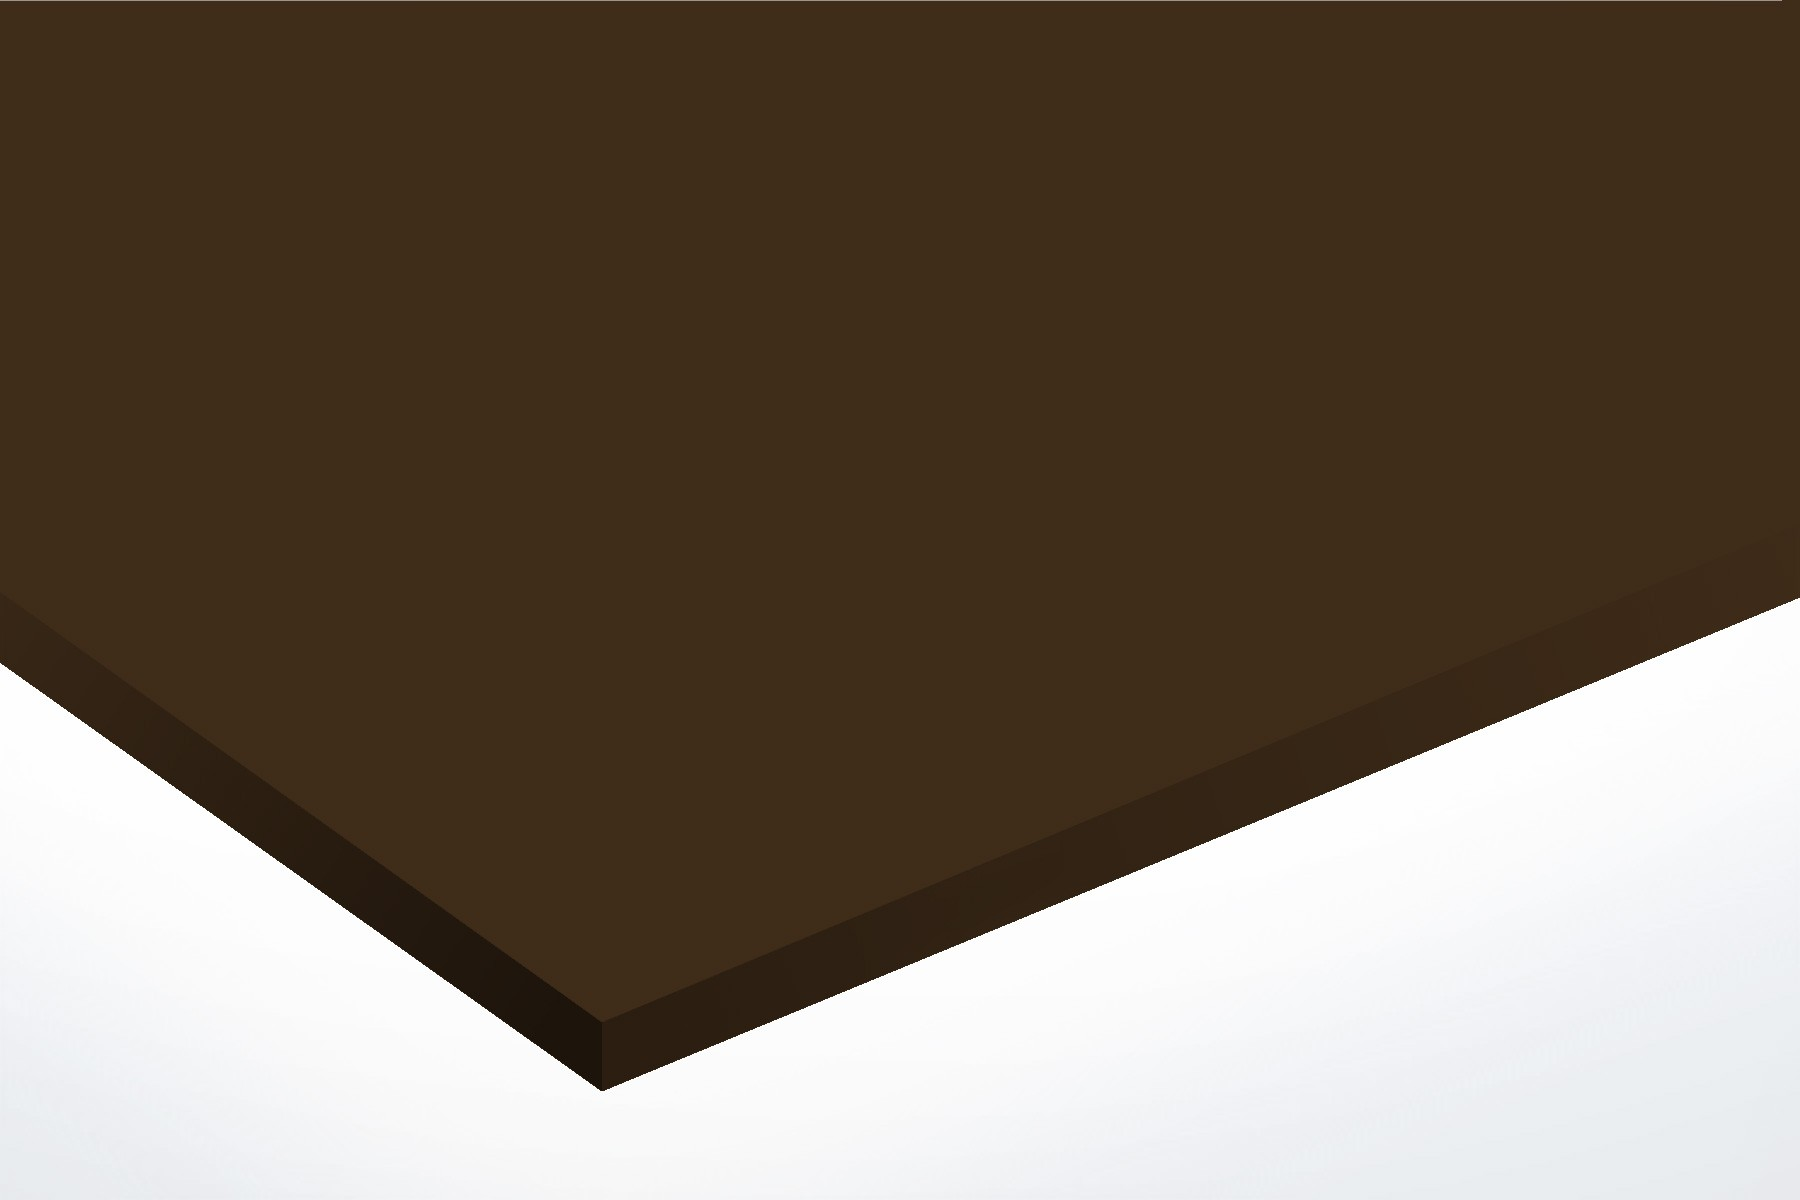 Anodised Aluminium Dark Bronze, Matte, 2mm x 1000mm x 500mm